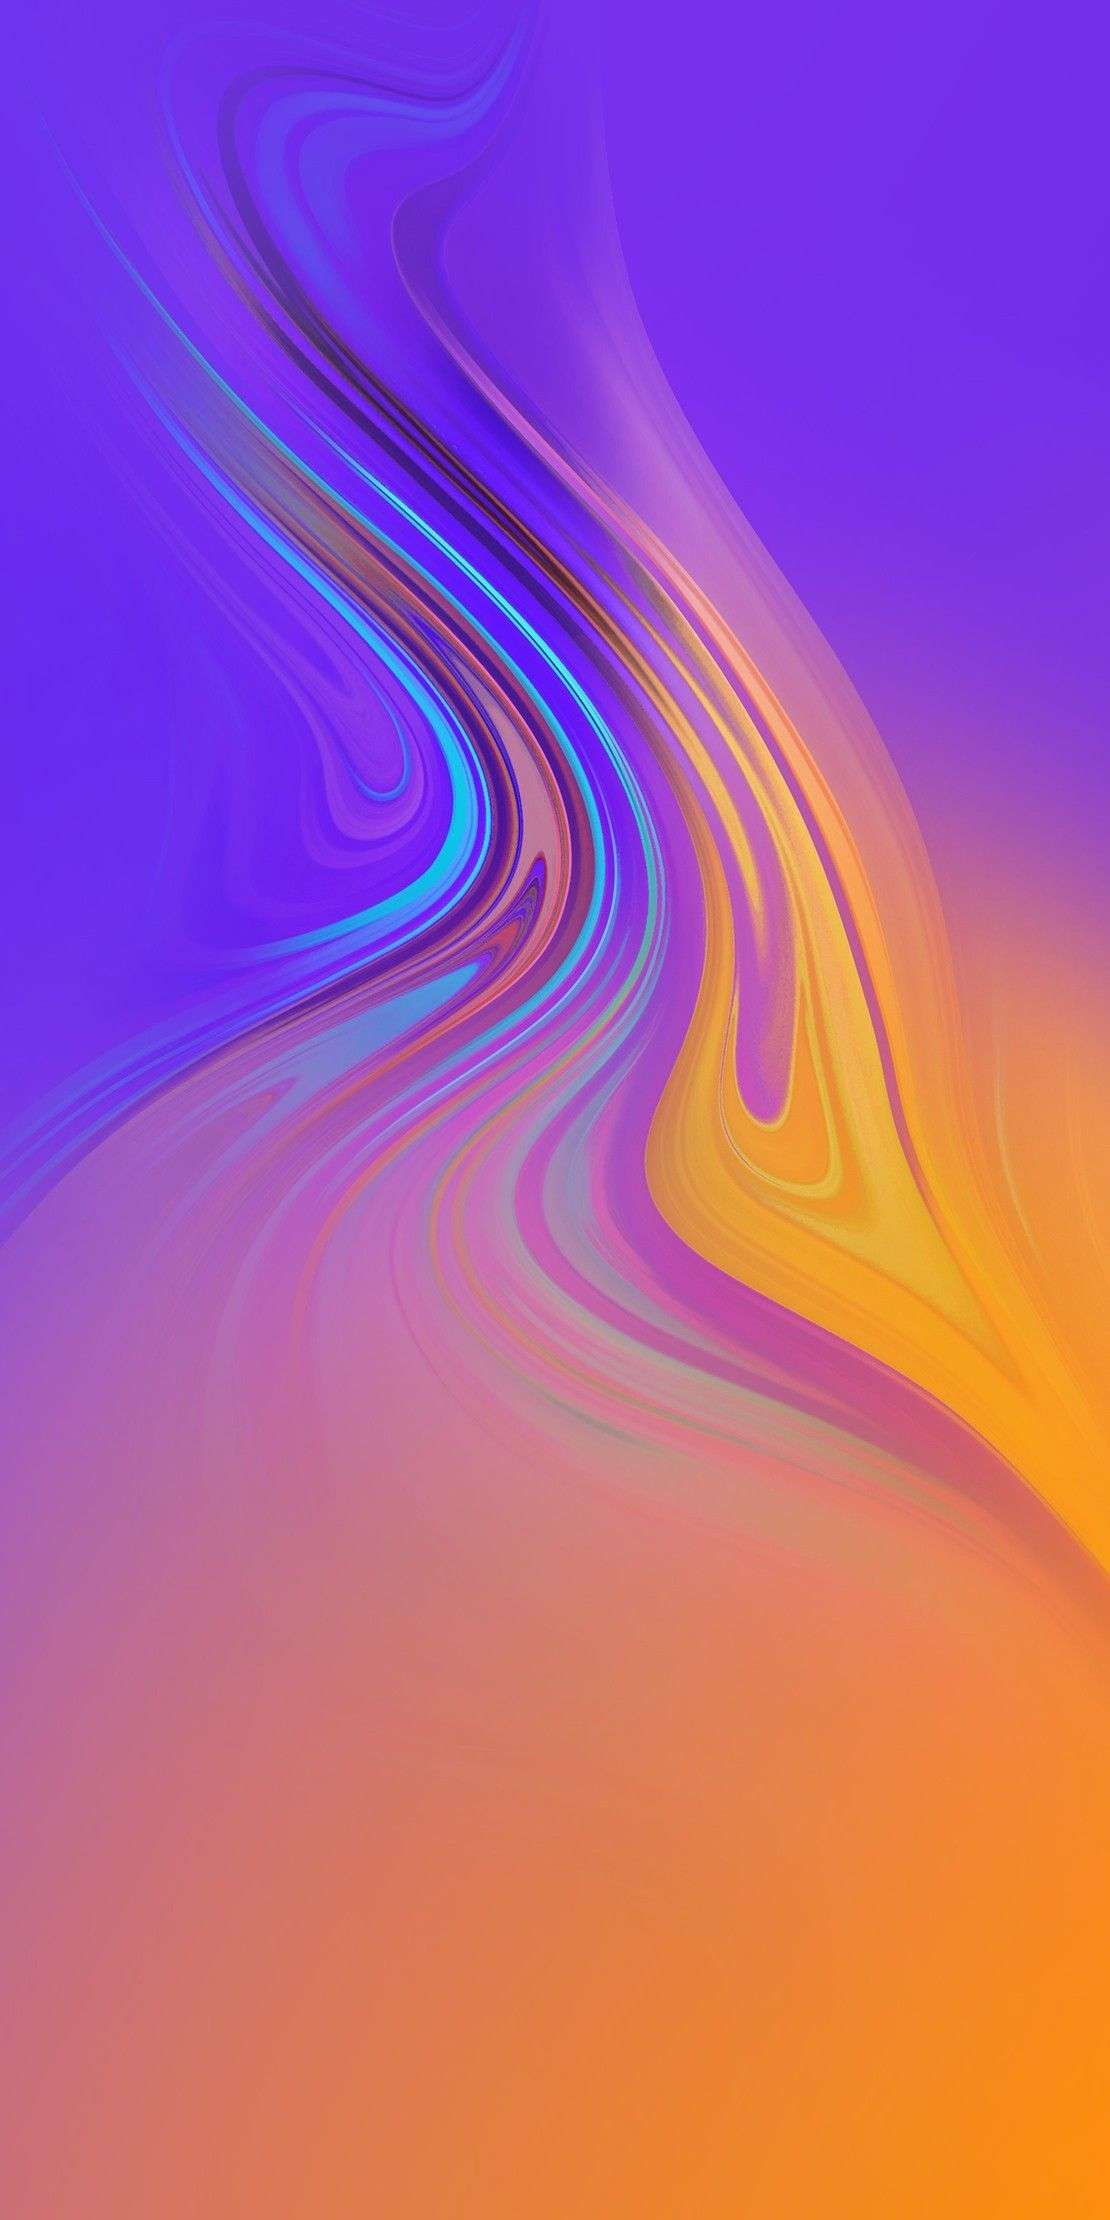 Pin By Zero Ultimus On Abstract Amoled Liquid Gradient Oneplus Wallpapers Iphone Wallpaper Abstract Wallpaper Backgrounds